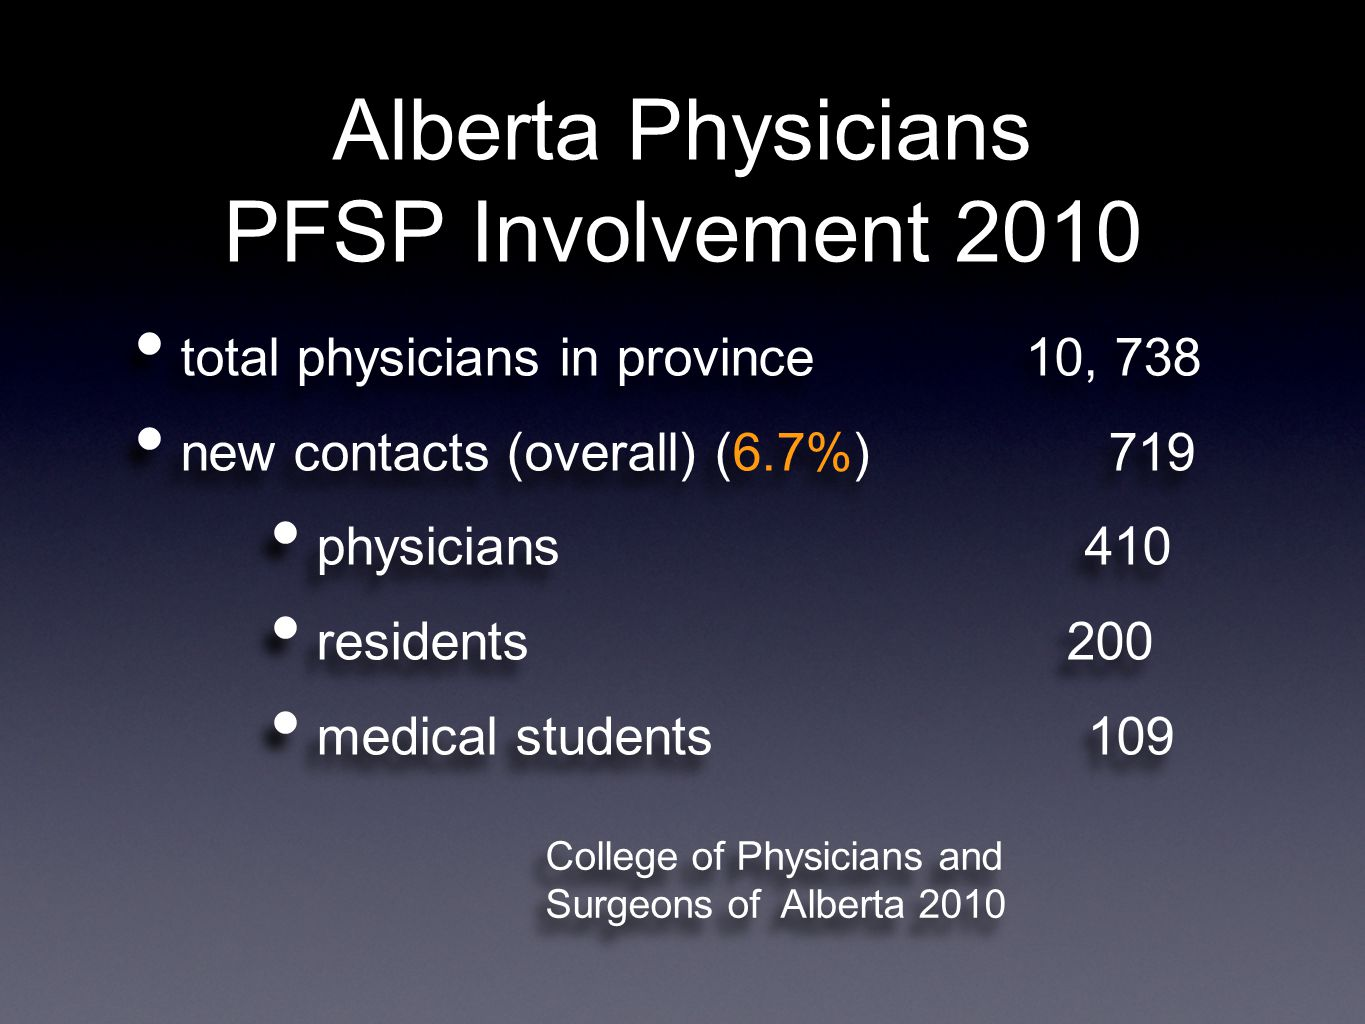 Alberta Physicians PFSP Involvement 2010 total physicians in province 10, 738 new contacts (overall) (6.7%) 719 physicians 410 residents 200 medical students 109 total physicians in province 10, 738 new contacts (overall) (6.7%) 719 physicians 410 residents 200 medical students 109 College of Physicians and Surgeons of Alberta 2010